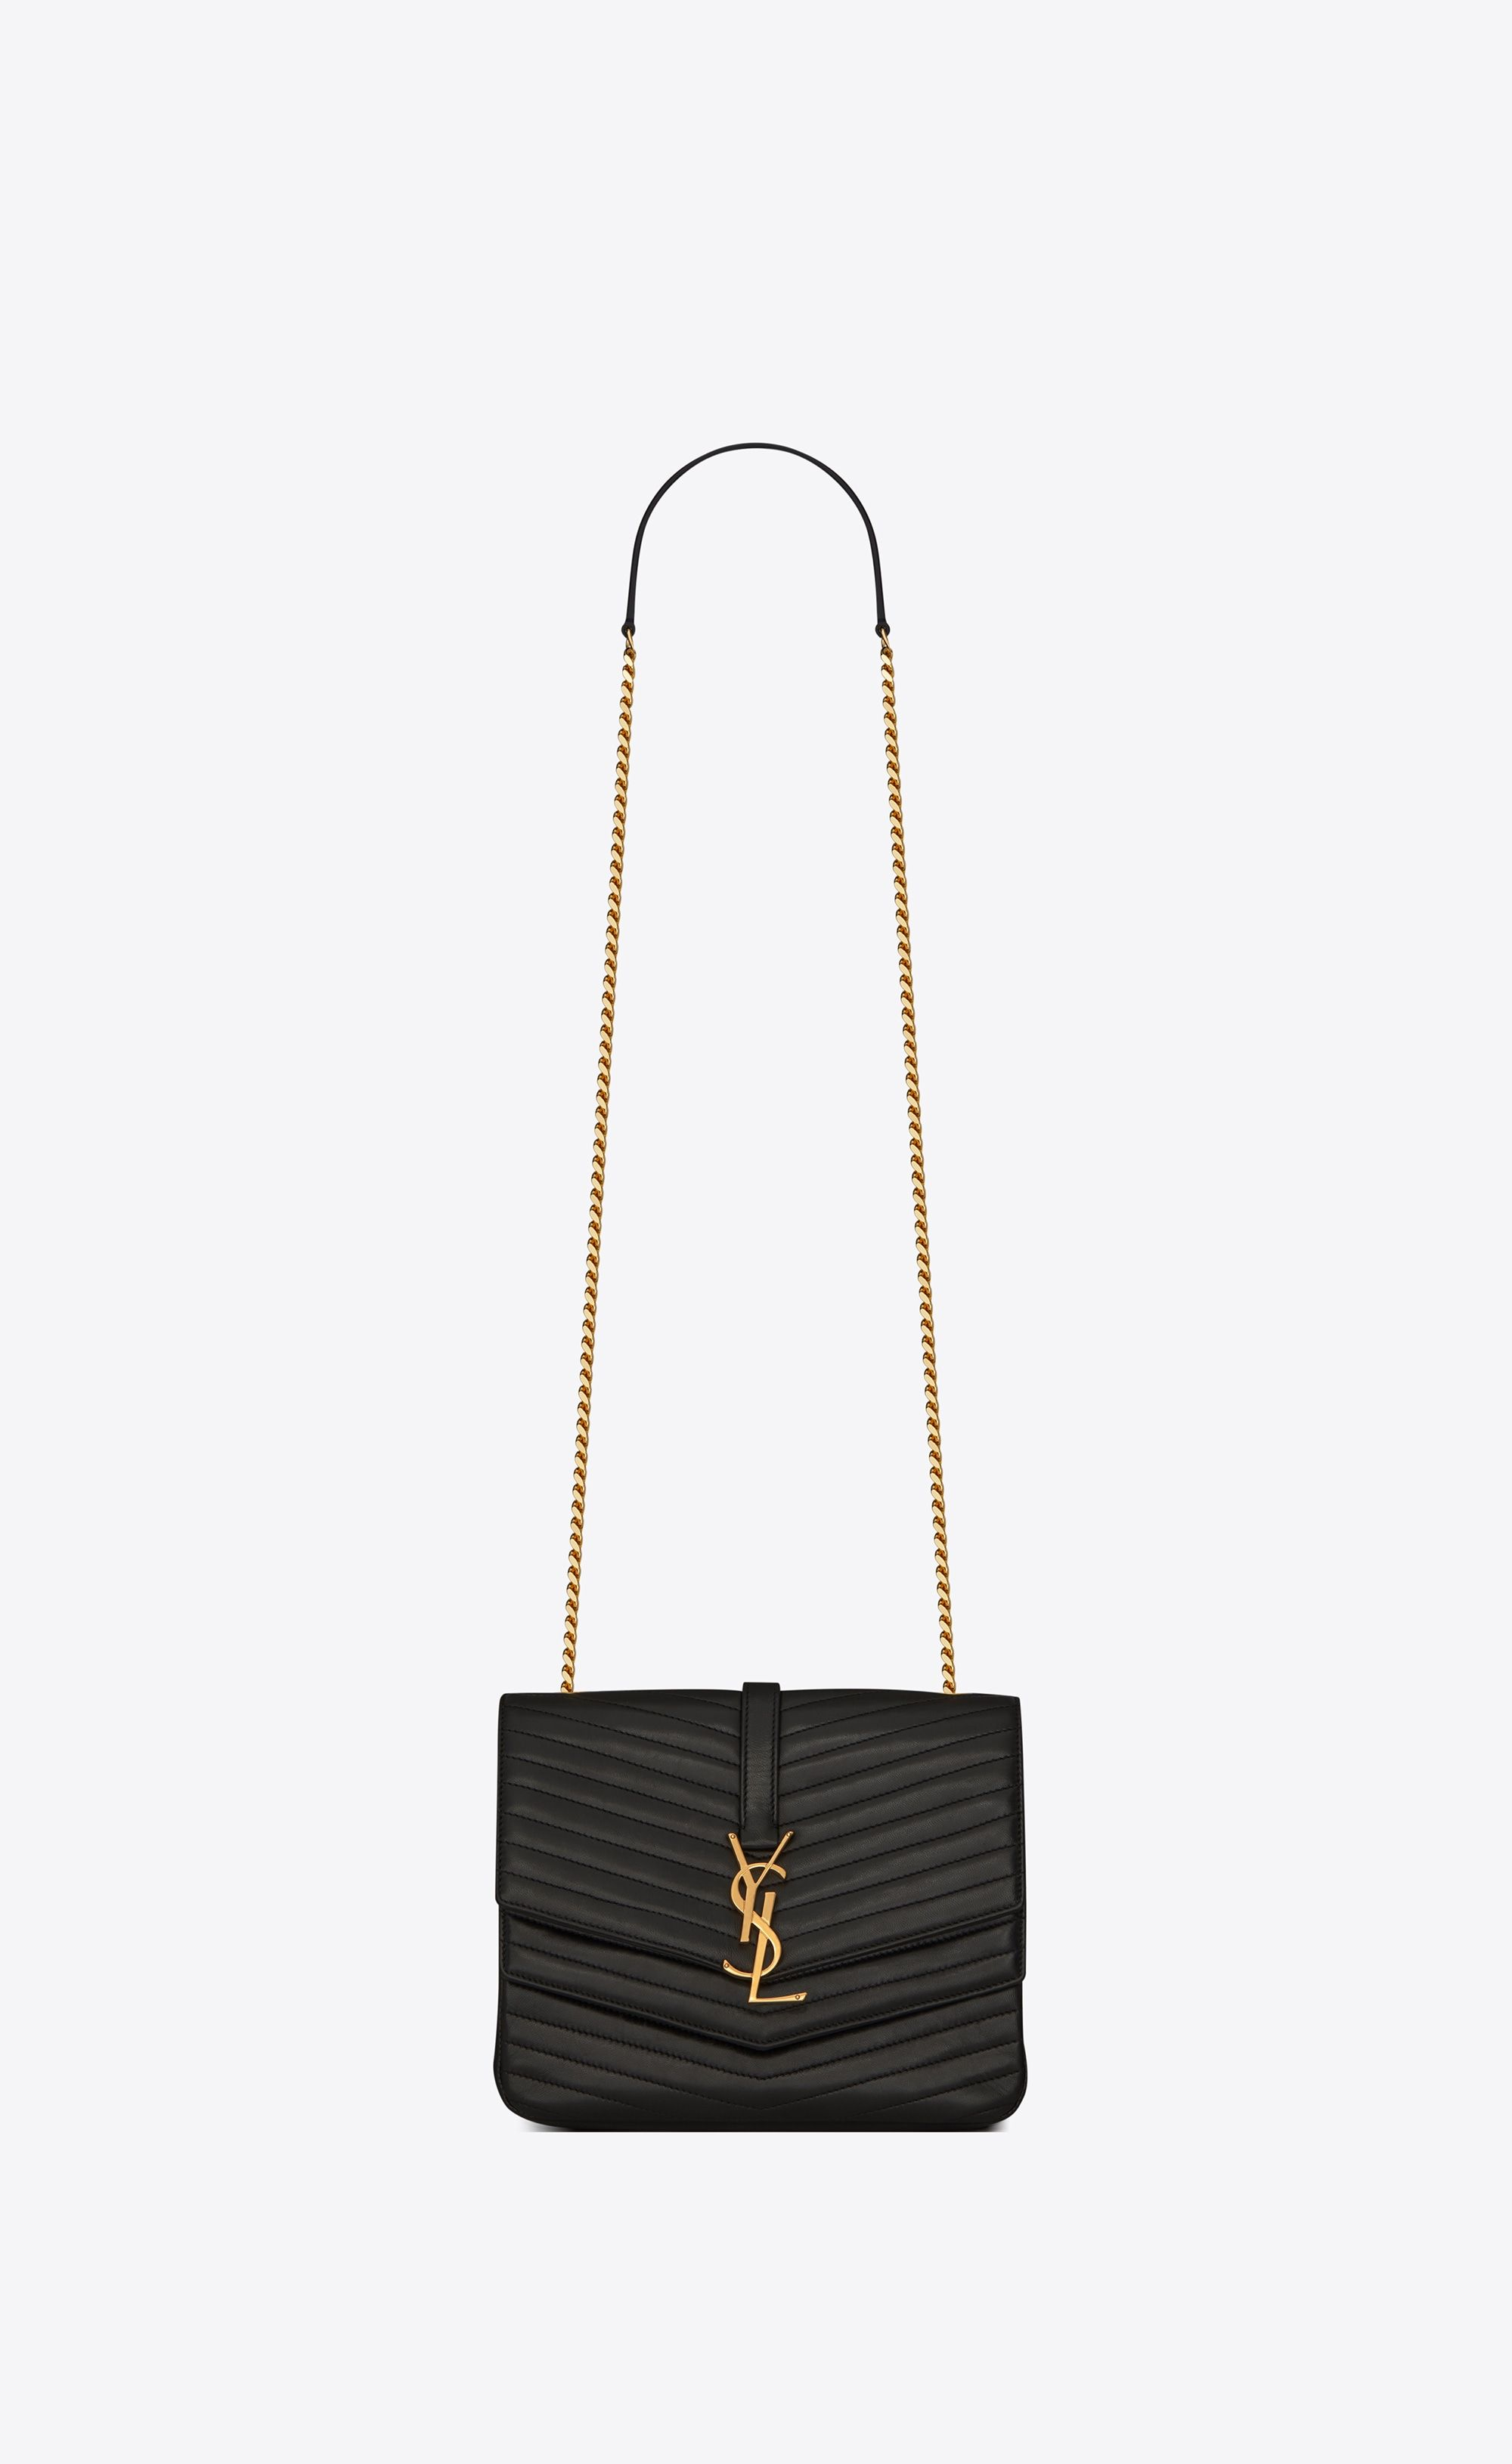 c167cc787d7a Saint Laurent Medium Soft Sulpice Chain Bag In Quilted Black Leather ...